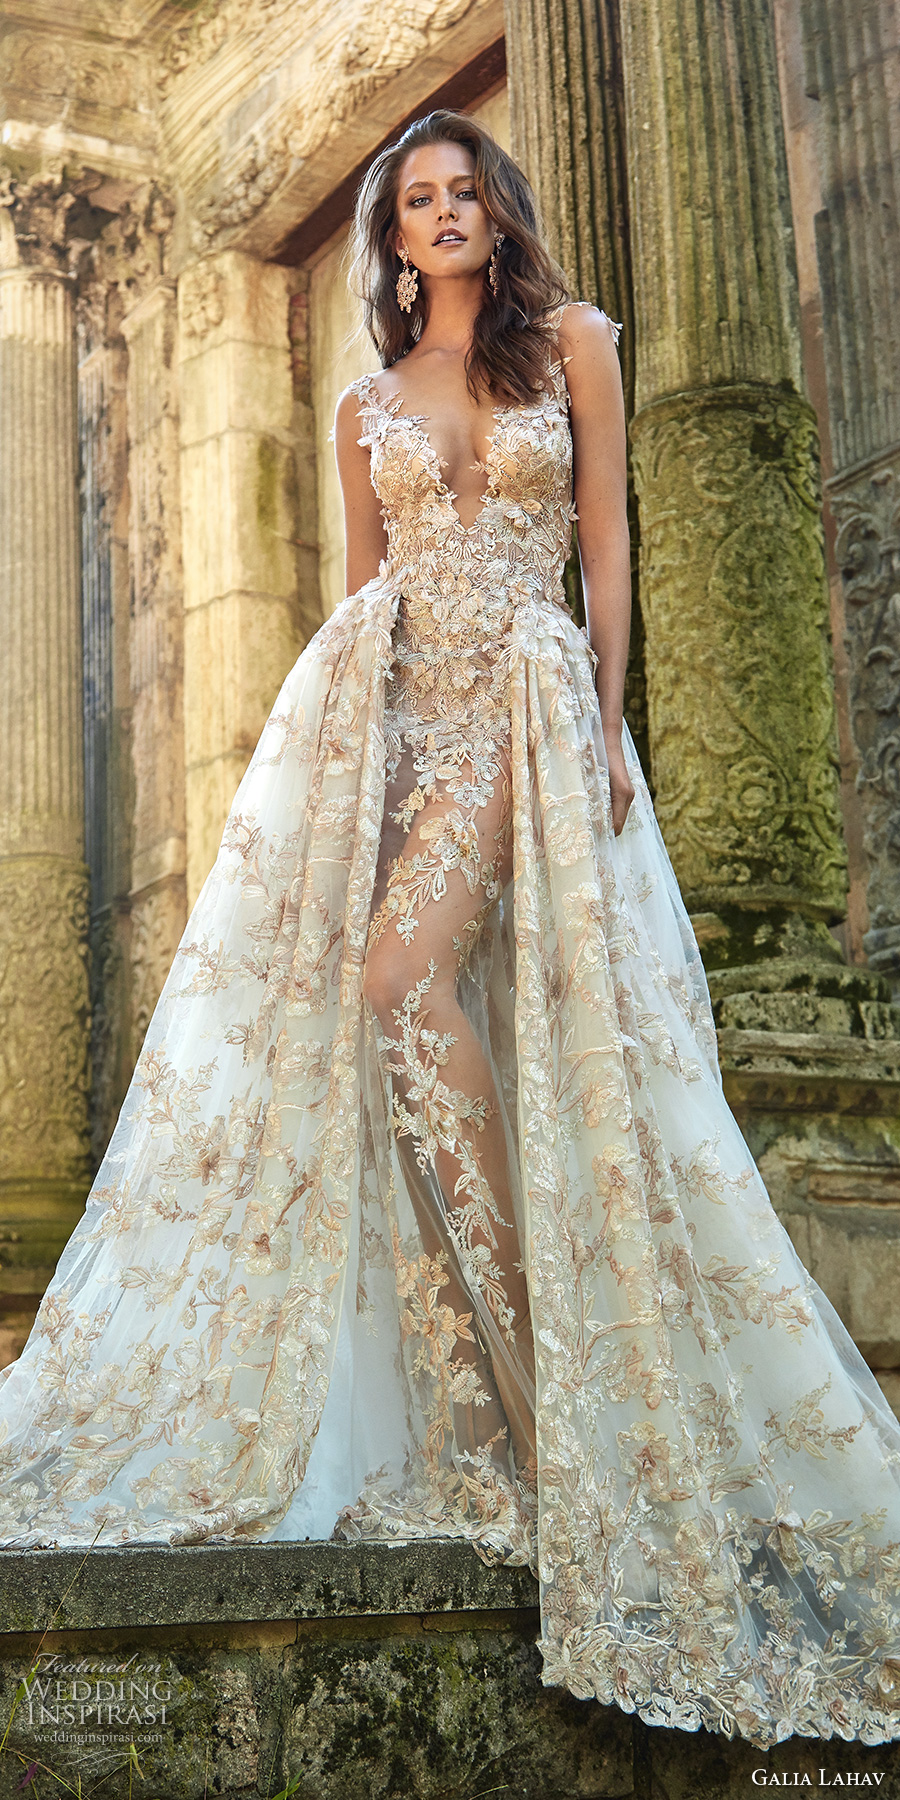 Beautiful Bridal Dreams are Made of These  Galia Lahav Fall 2017 Wedding Dresses  Wedding